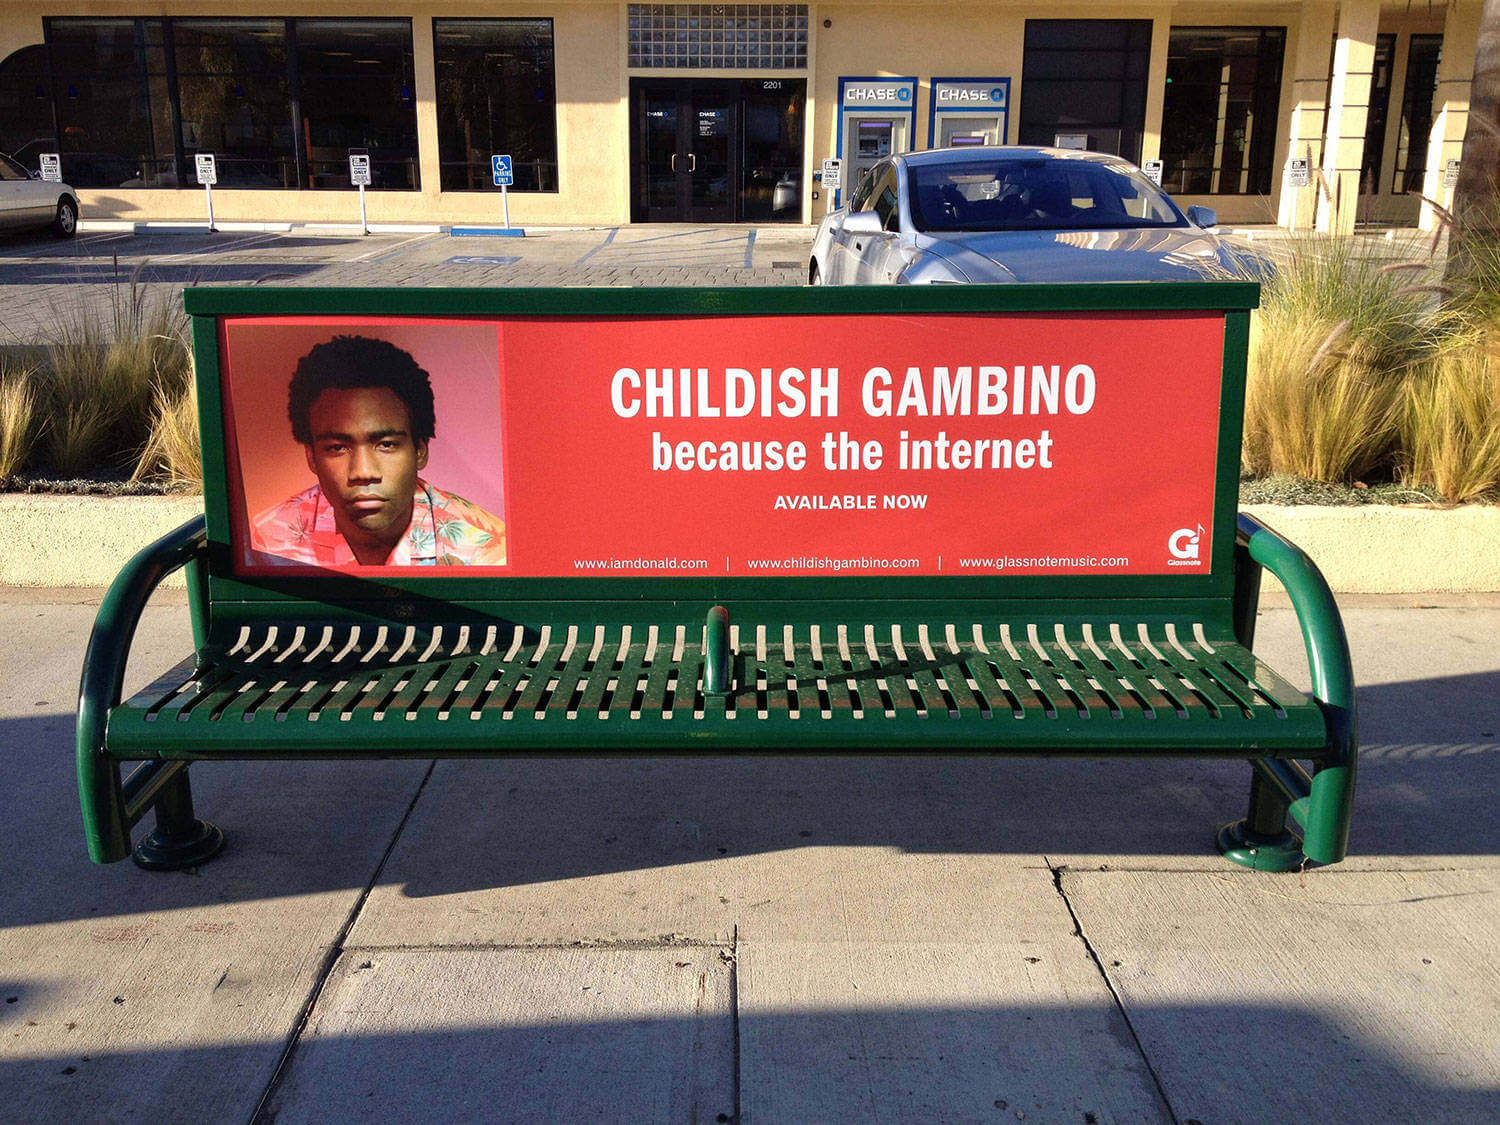 Childish Gambino Bench Ad Downtown Los Angeles Bus Bench Ads